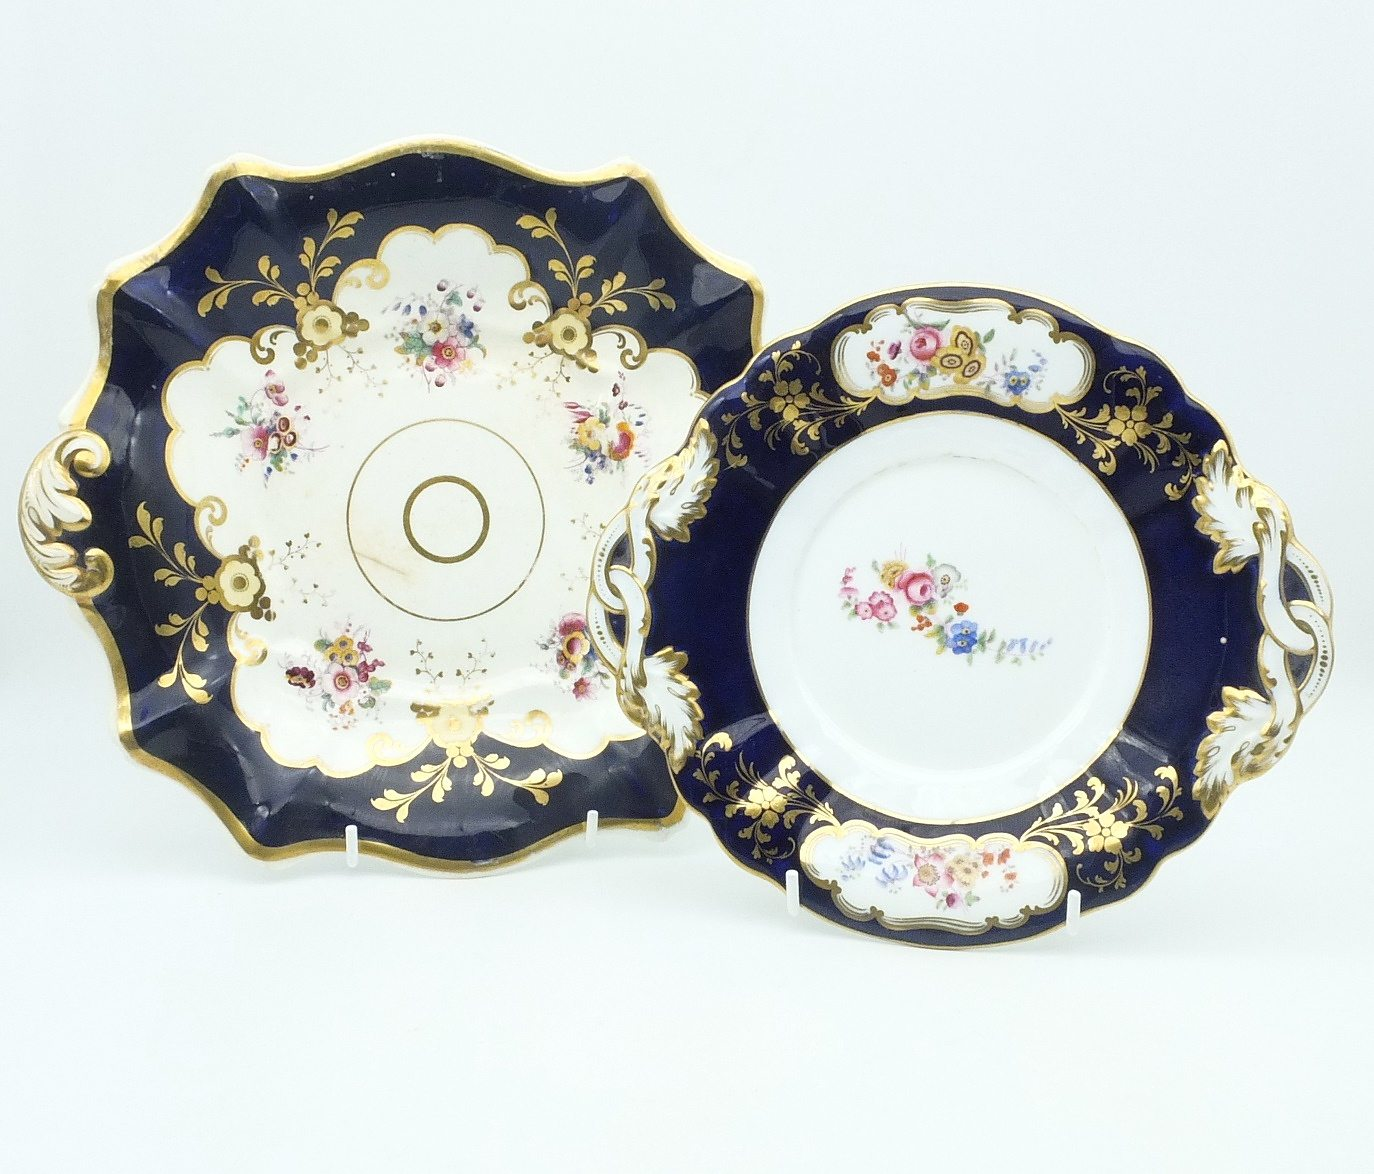 'Two Early Victorian Hand Painted and Gilded Porcelain Plates'